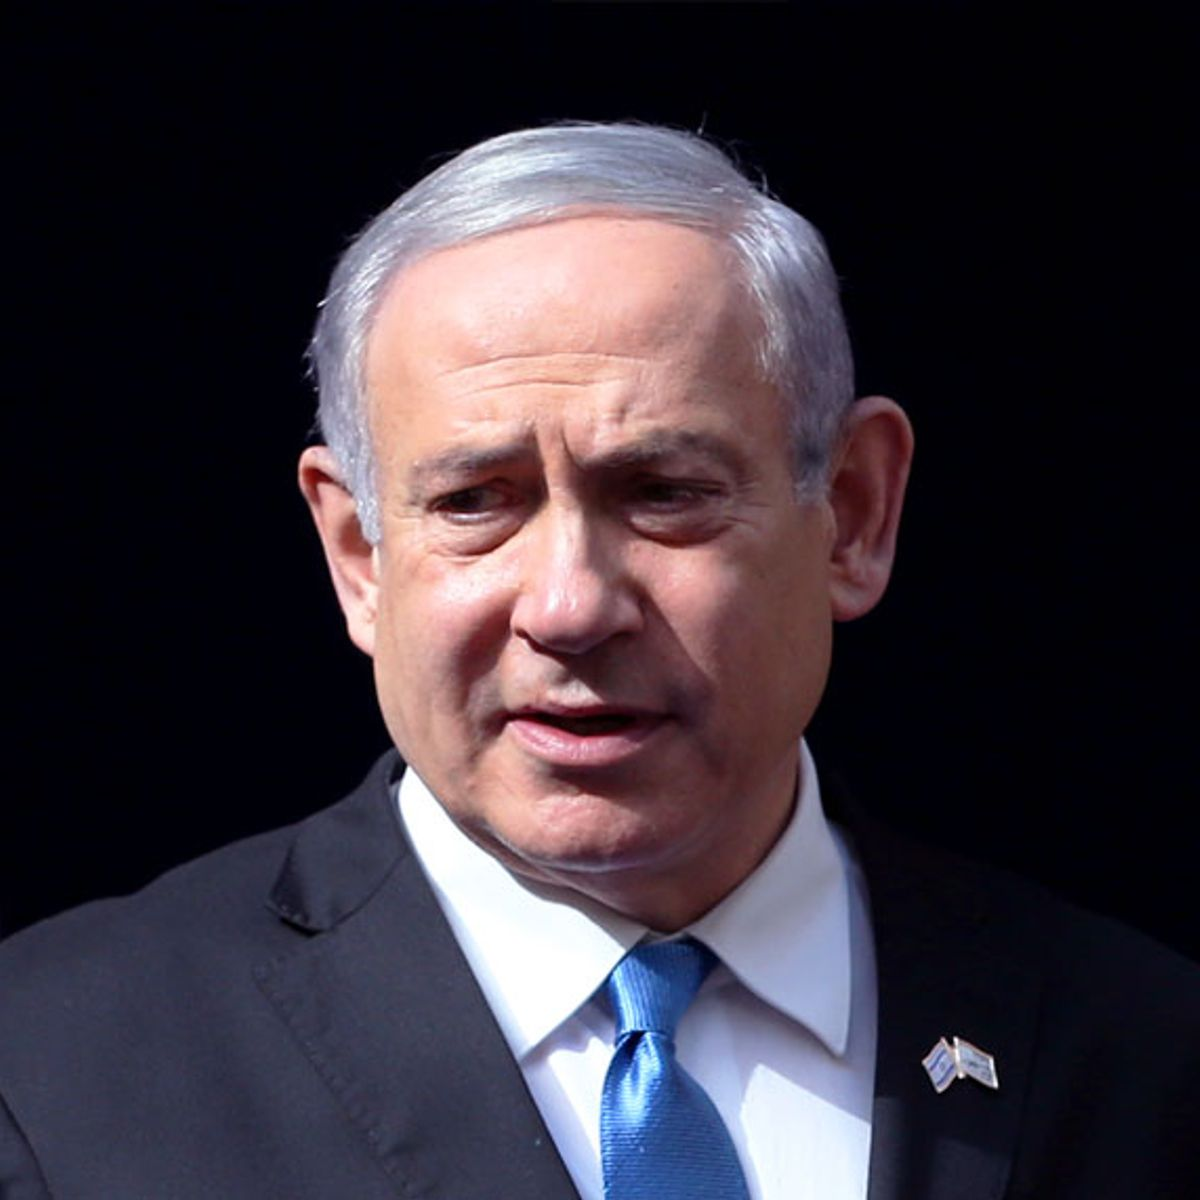 Israeli Prime Minister Benjamin Netanyahu indicted on charges of bribery, fraud and breach of trust